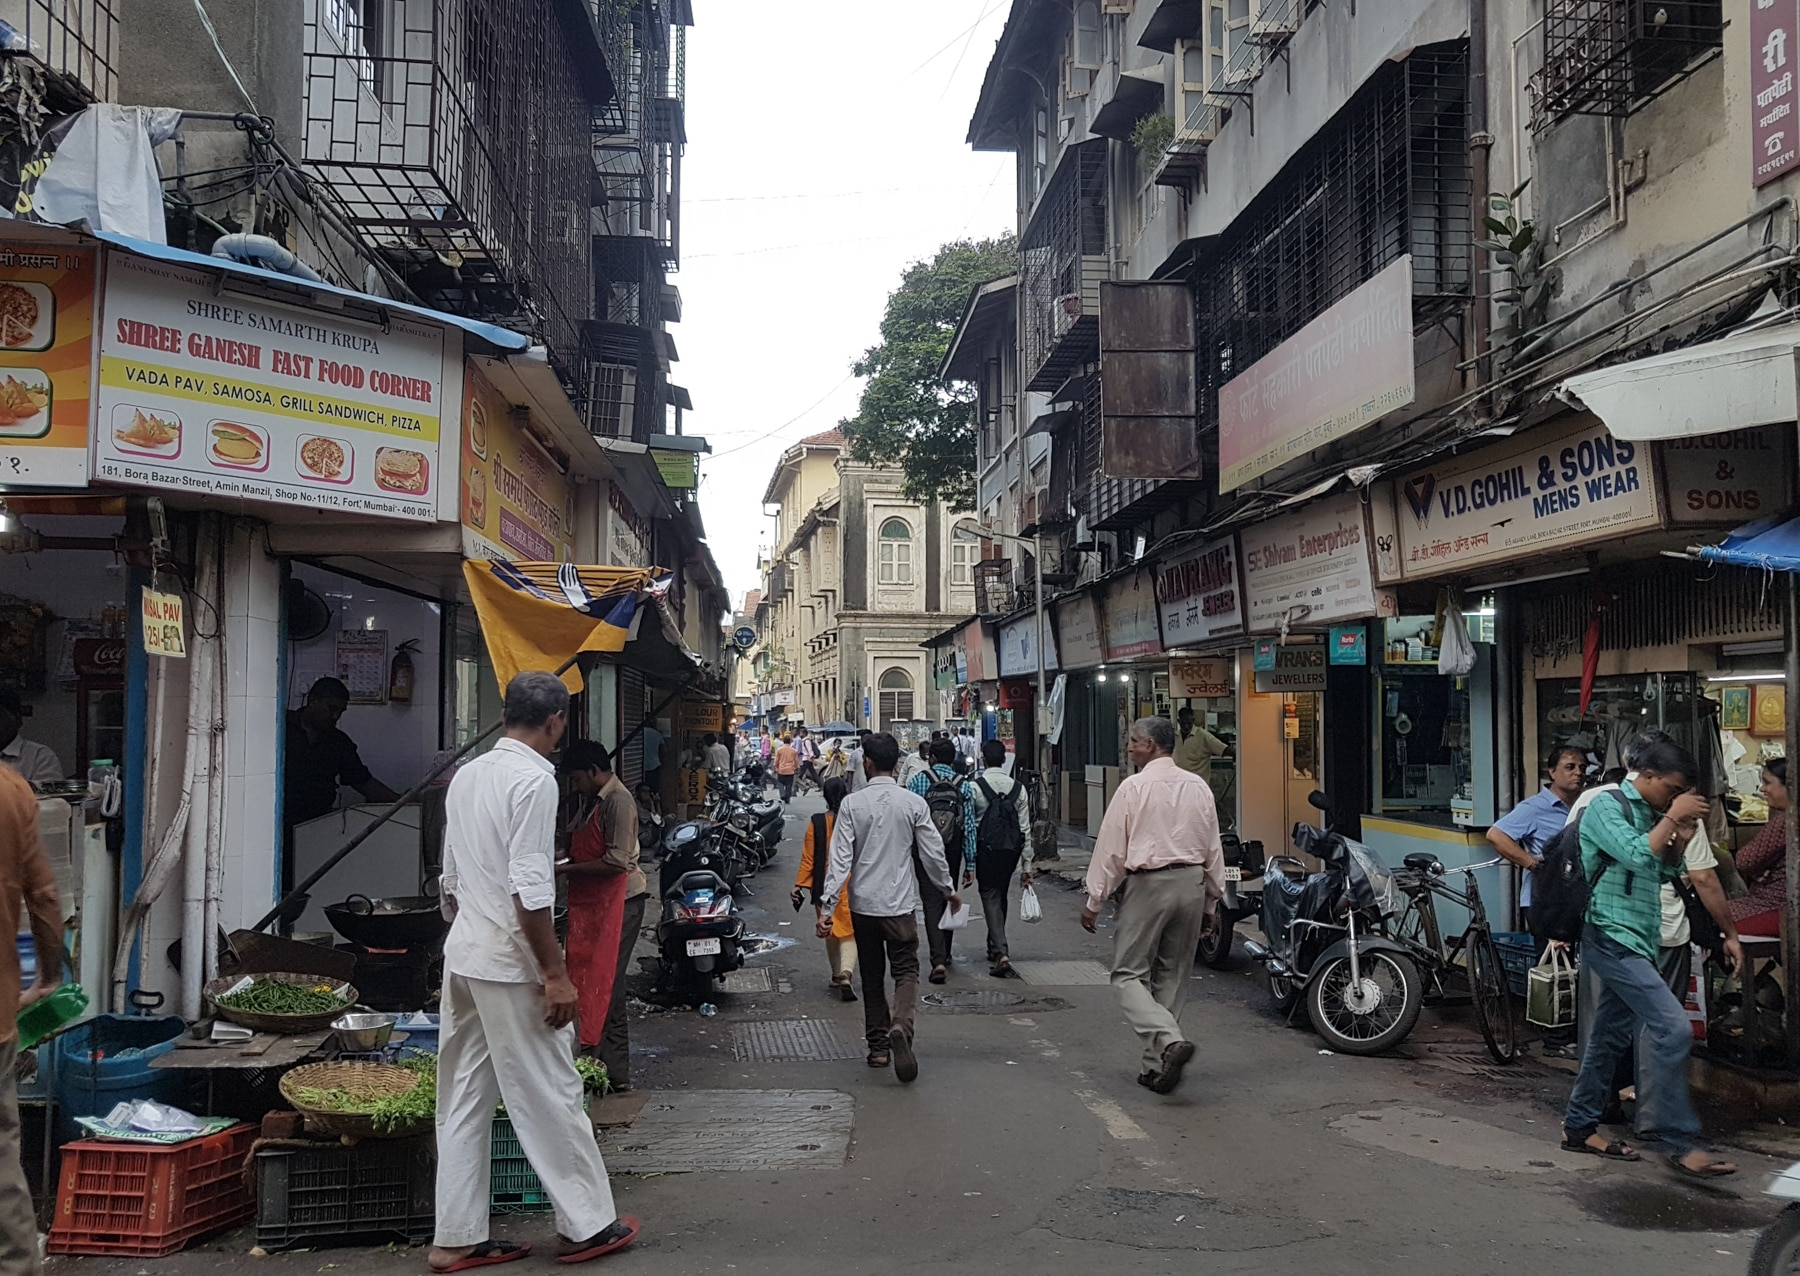 People walking down a street lined with businesses in Mumbai, India (Shutterstock)